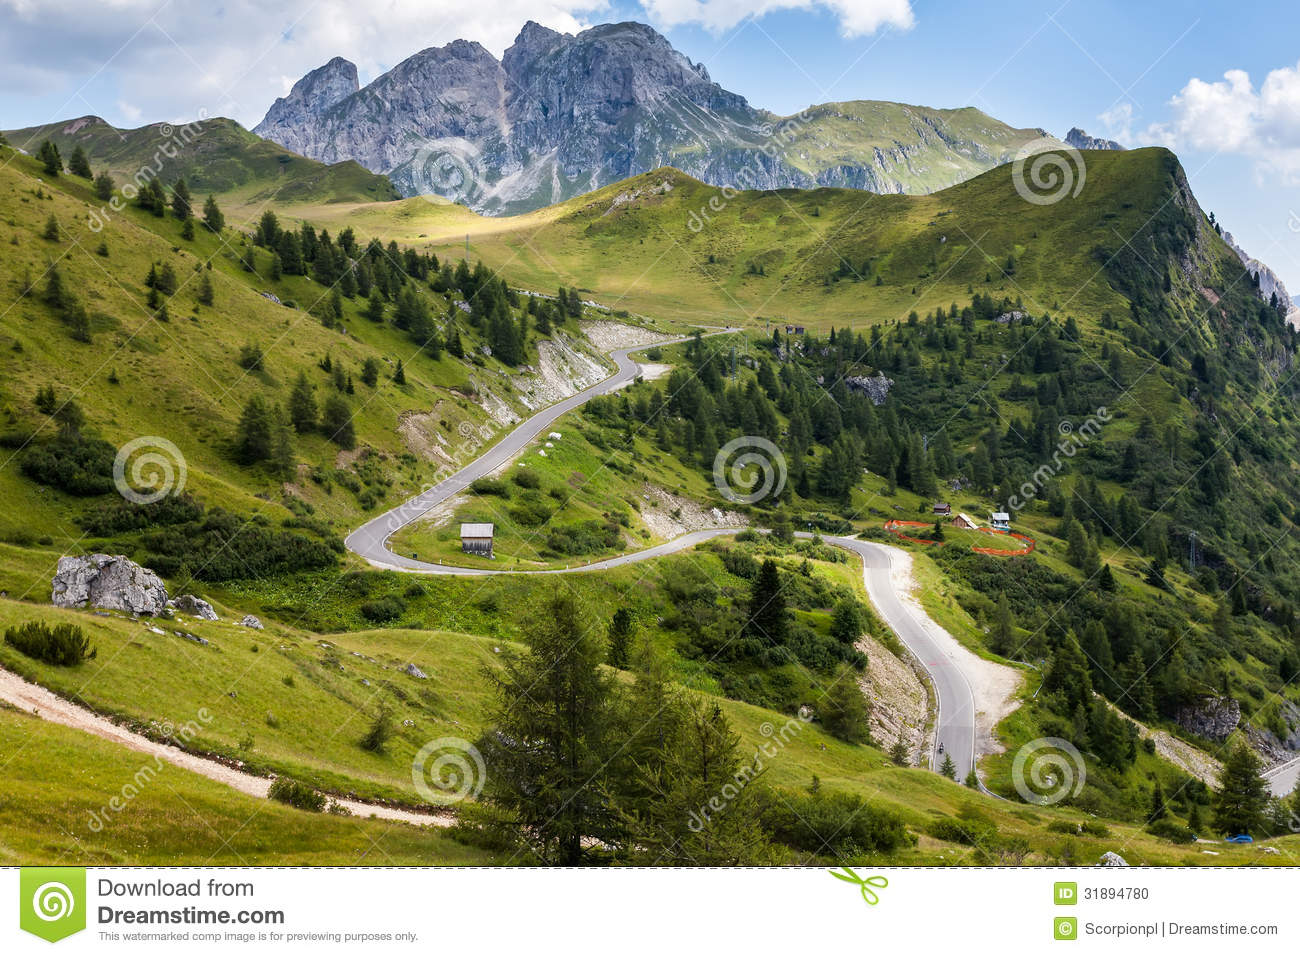 usa road map states with Stock Photo Winding Mountain Road Passo Giau Dolomites Italy Europe Image31894780 on Providence Rhode Island as well Hokkaido additionally Large Detailed Roads And Highways Map Of Oregon State With National Parks And Cities in addition Colusa County Map in addition Juneau.